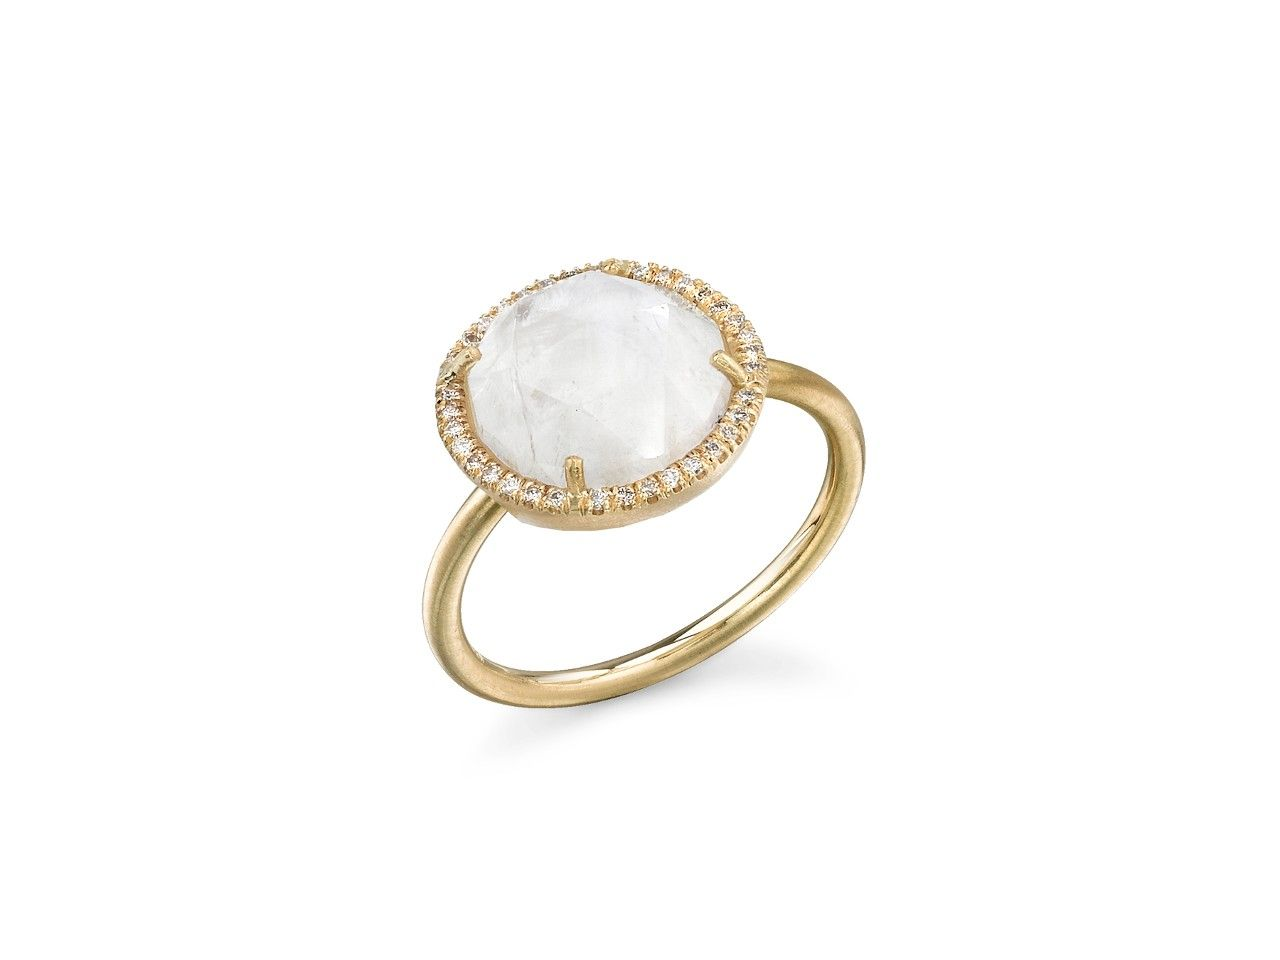 Irene Neuwirth Rainbow moonstone & yellow-gold ring AyD6GXLZ